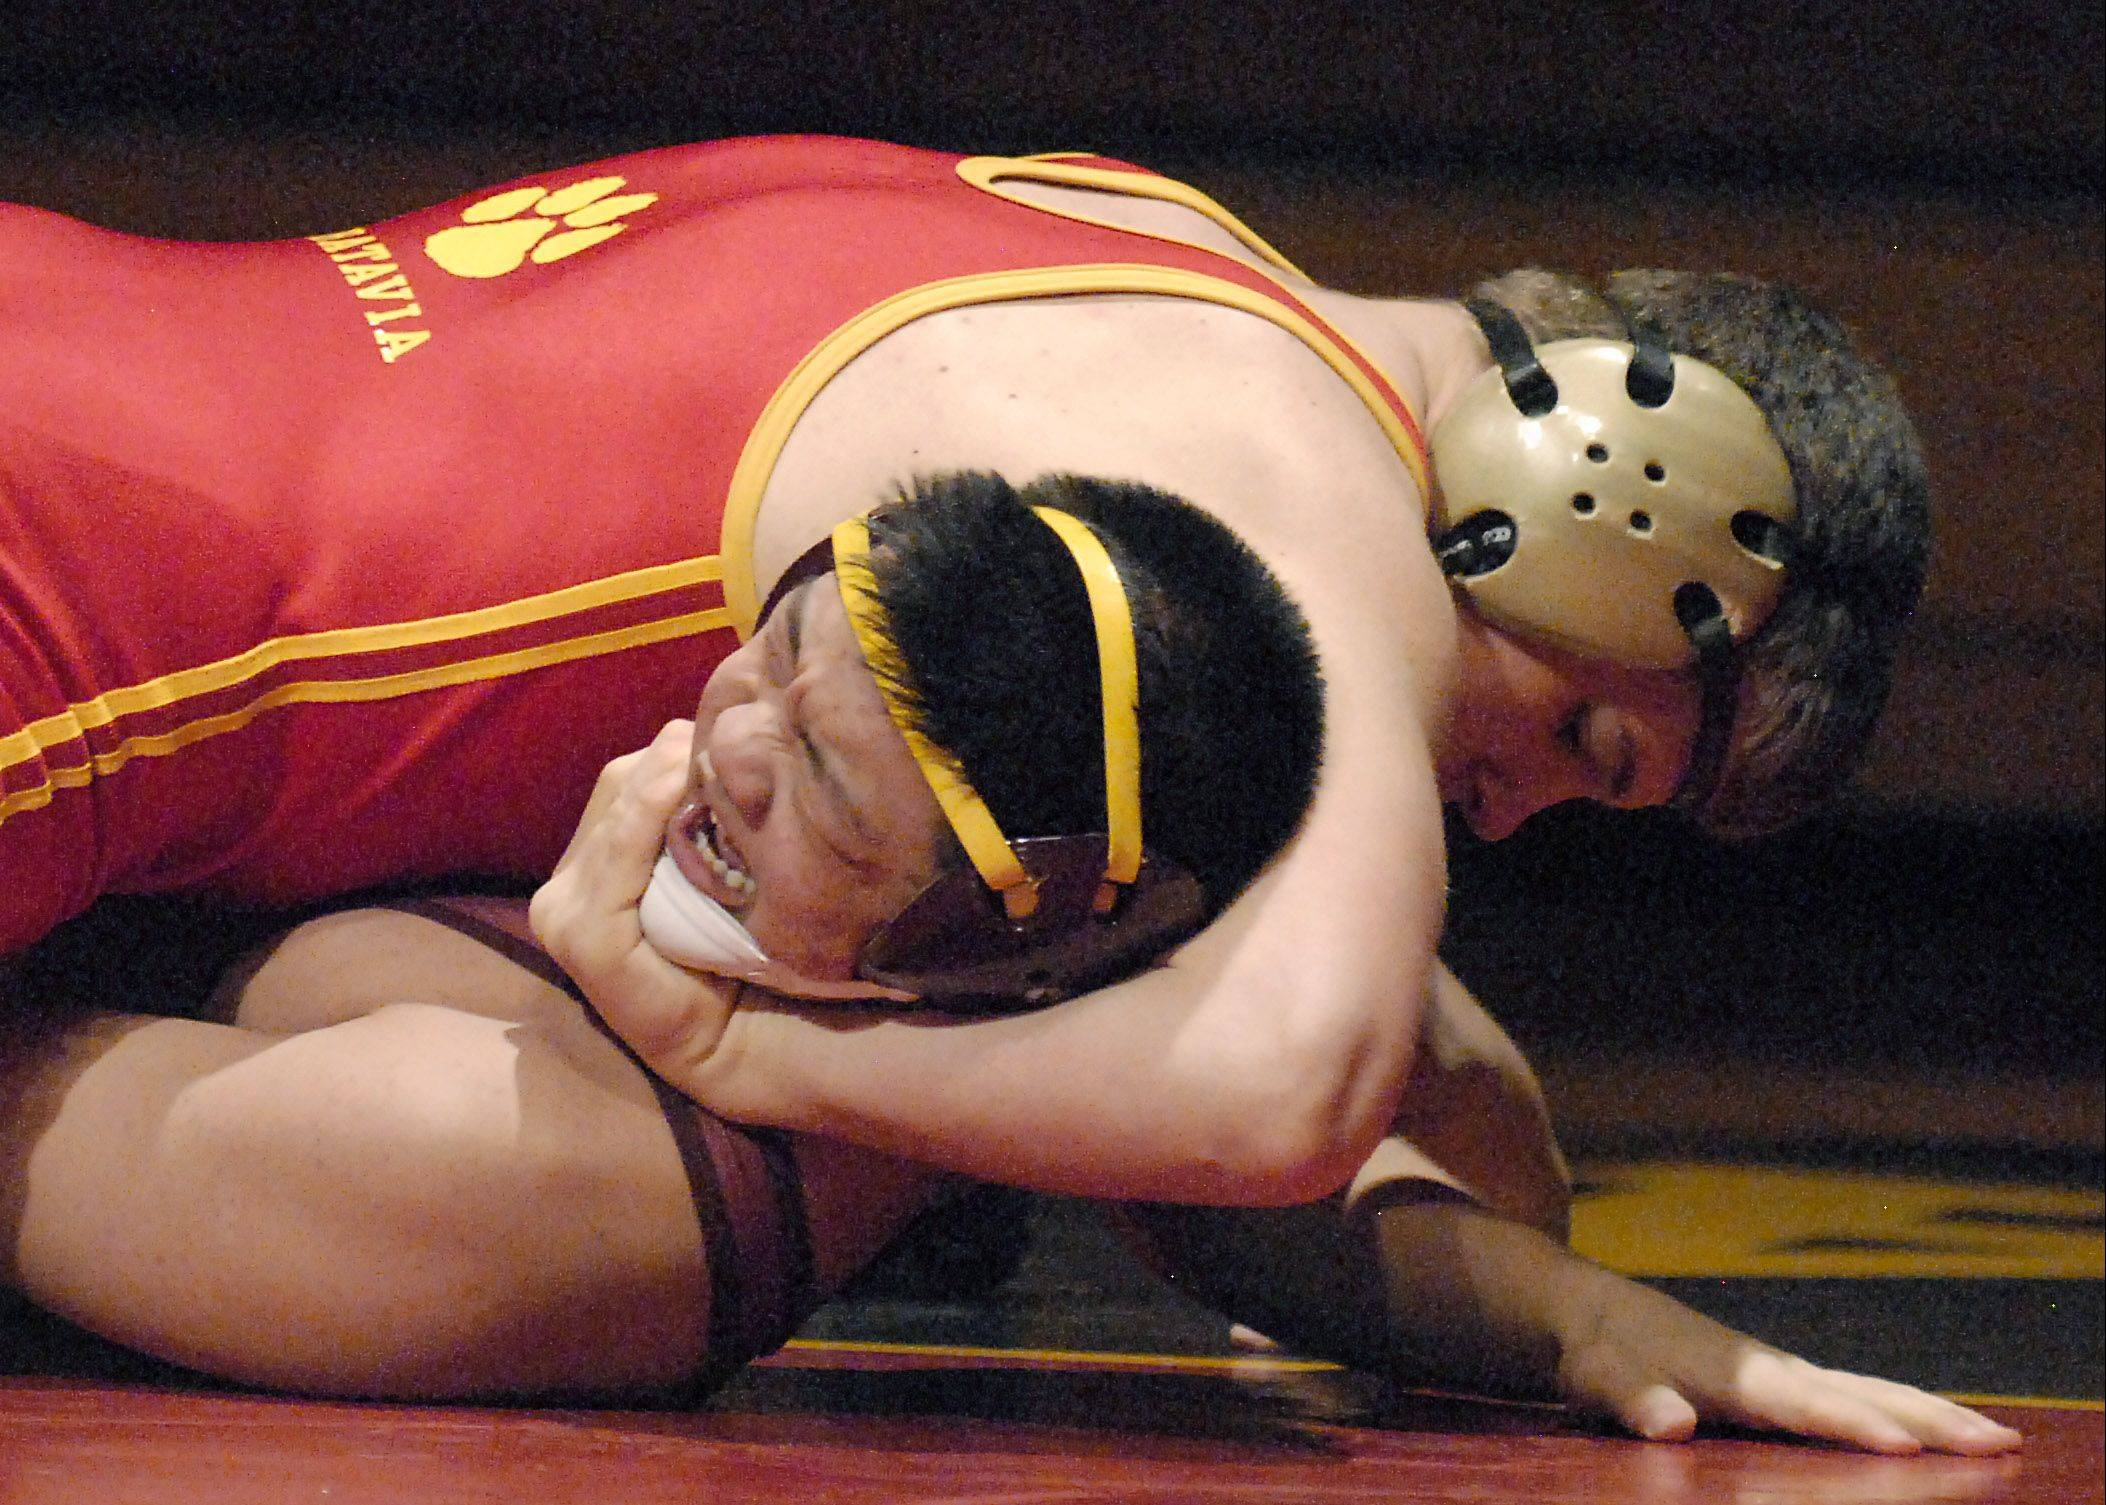 Batavia's Nick Whittman won his 170-pound match against Schaumburg's Woo Lee on Saturday in Batavia.